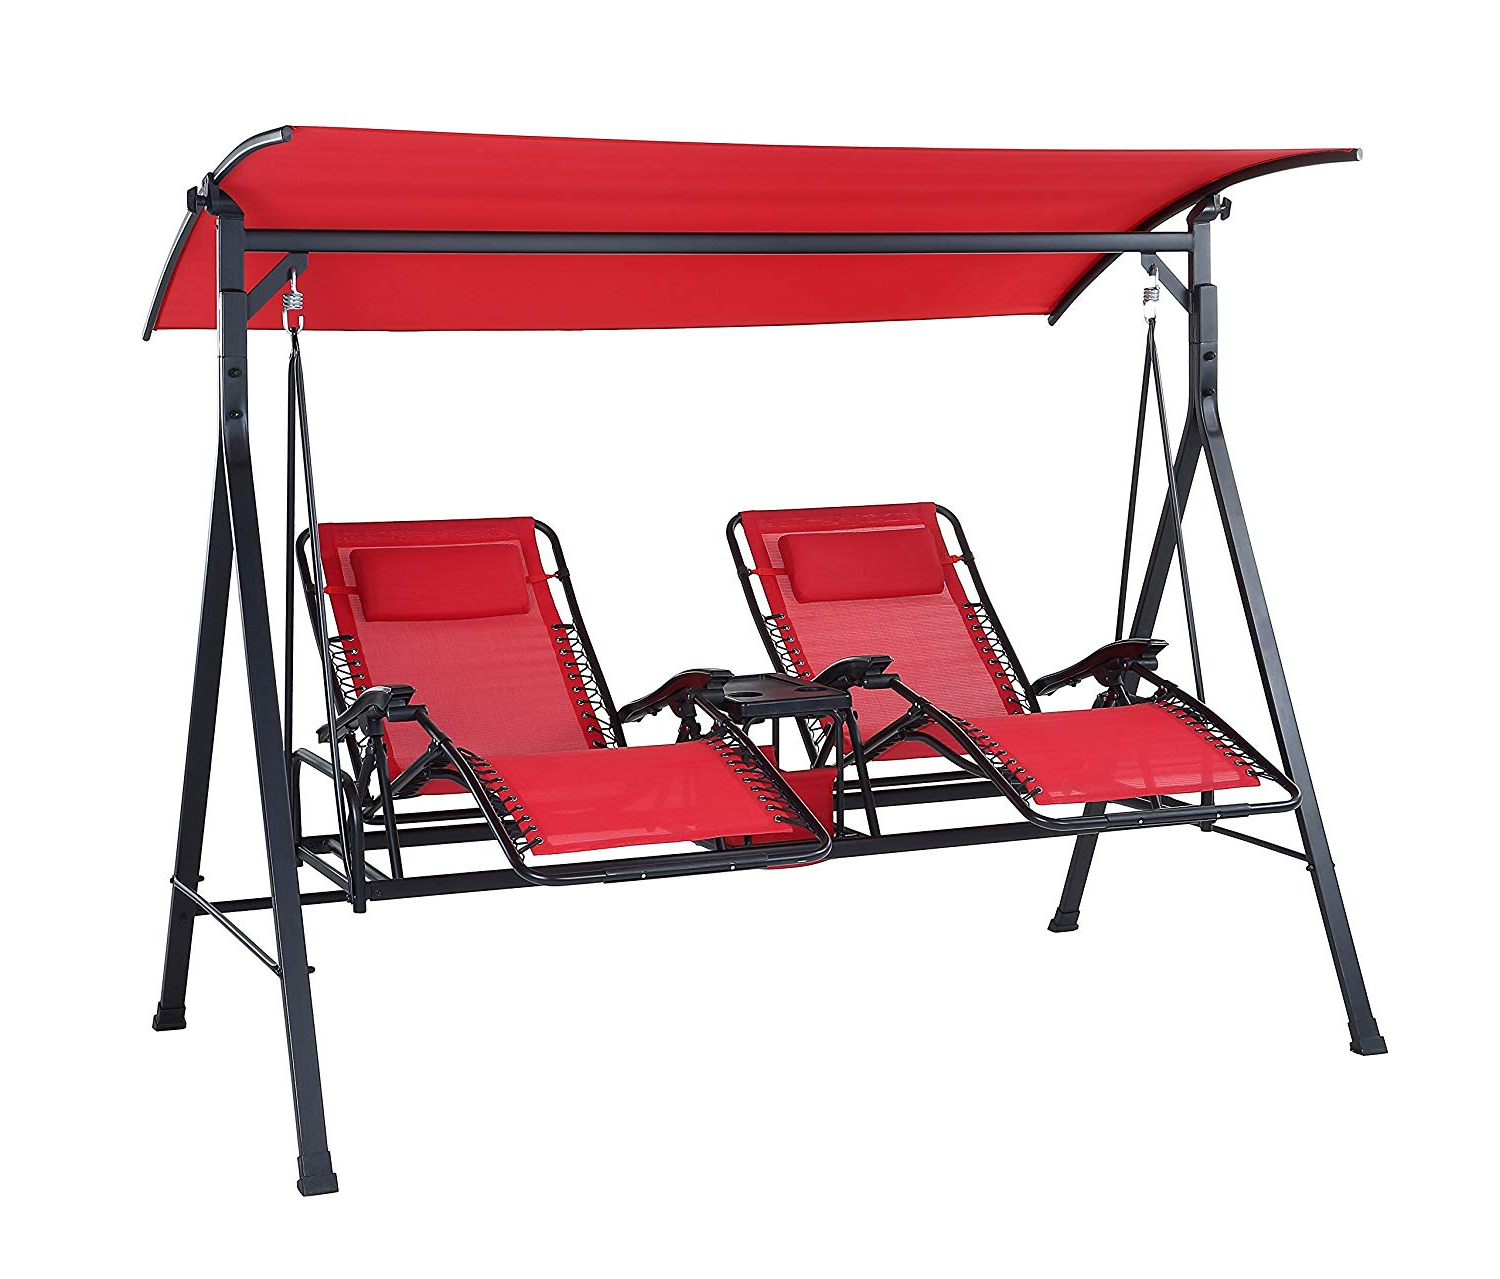 [%best Outdoor Reclining Zero Gravity Swing [2020 Update Within Preferred Canopy Patio Porch Swings With Pillows And Cup Holders|canopy Patio Porch Swings With Pillows And Cup Holders With Current Best Outdoor Reclining Zero Gravity Swing [2020 Update|best And Newest Canopy Patio Porch Swings With Pillows And Cup Holders For Best Outdoor Reclining Zero Gravity Swing [2020 Update|widely Used Best Outdoor Reclining Zero Gravity Swing [2020 Update Regarding Canopy Patio Porch Swings With Pillows And Cup Holders%] (View 18 of 25)